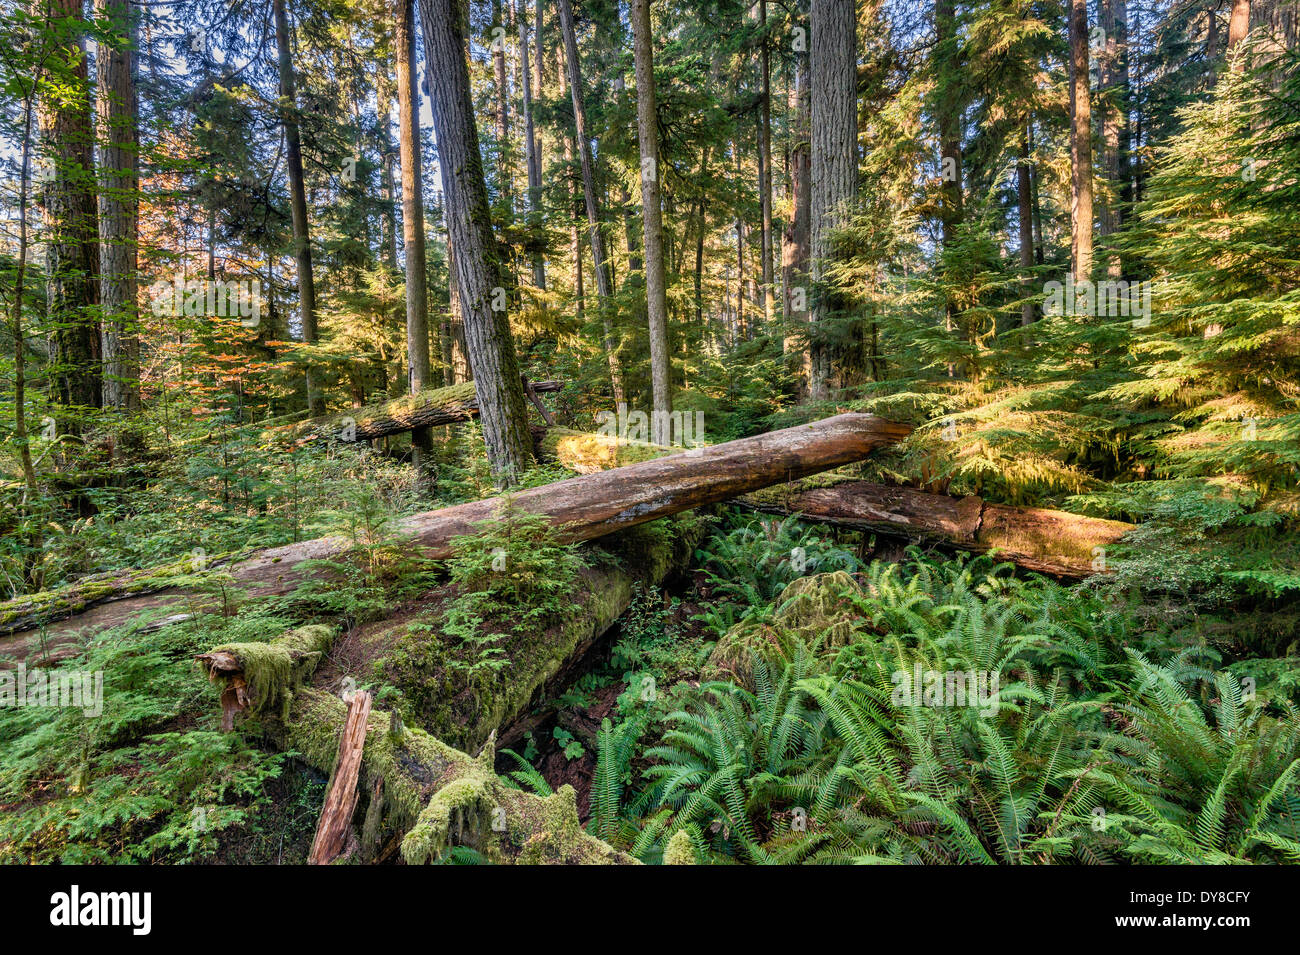 Douglas-fir trees, old-growth temperate rain forest, MacMillan Provincial Park, Vancouver Island, British Columbia, Canada - Stock Image